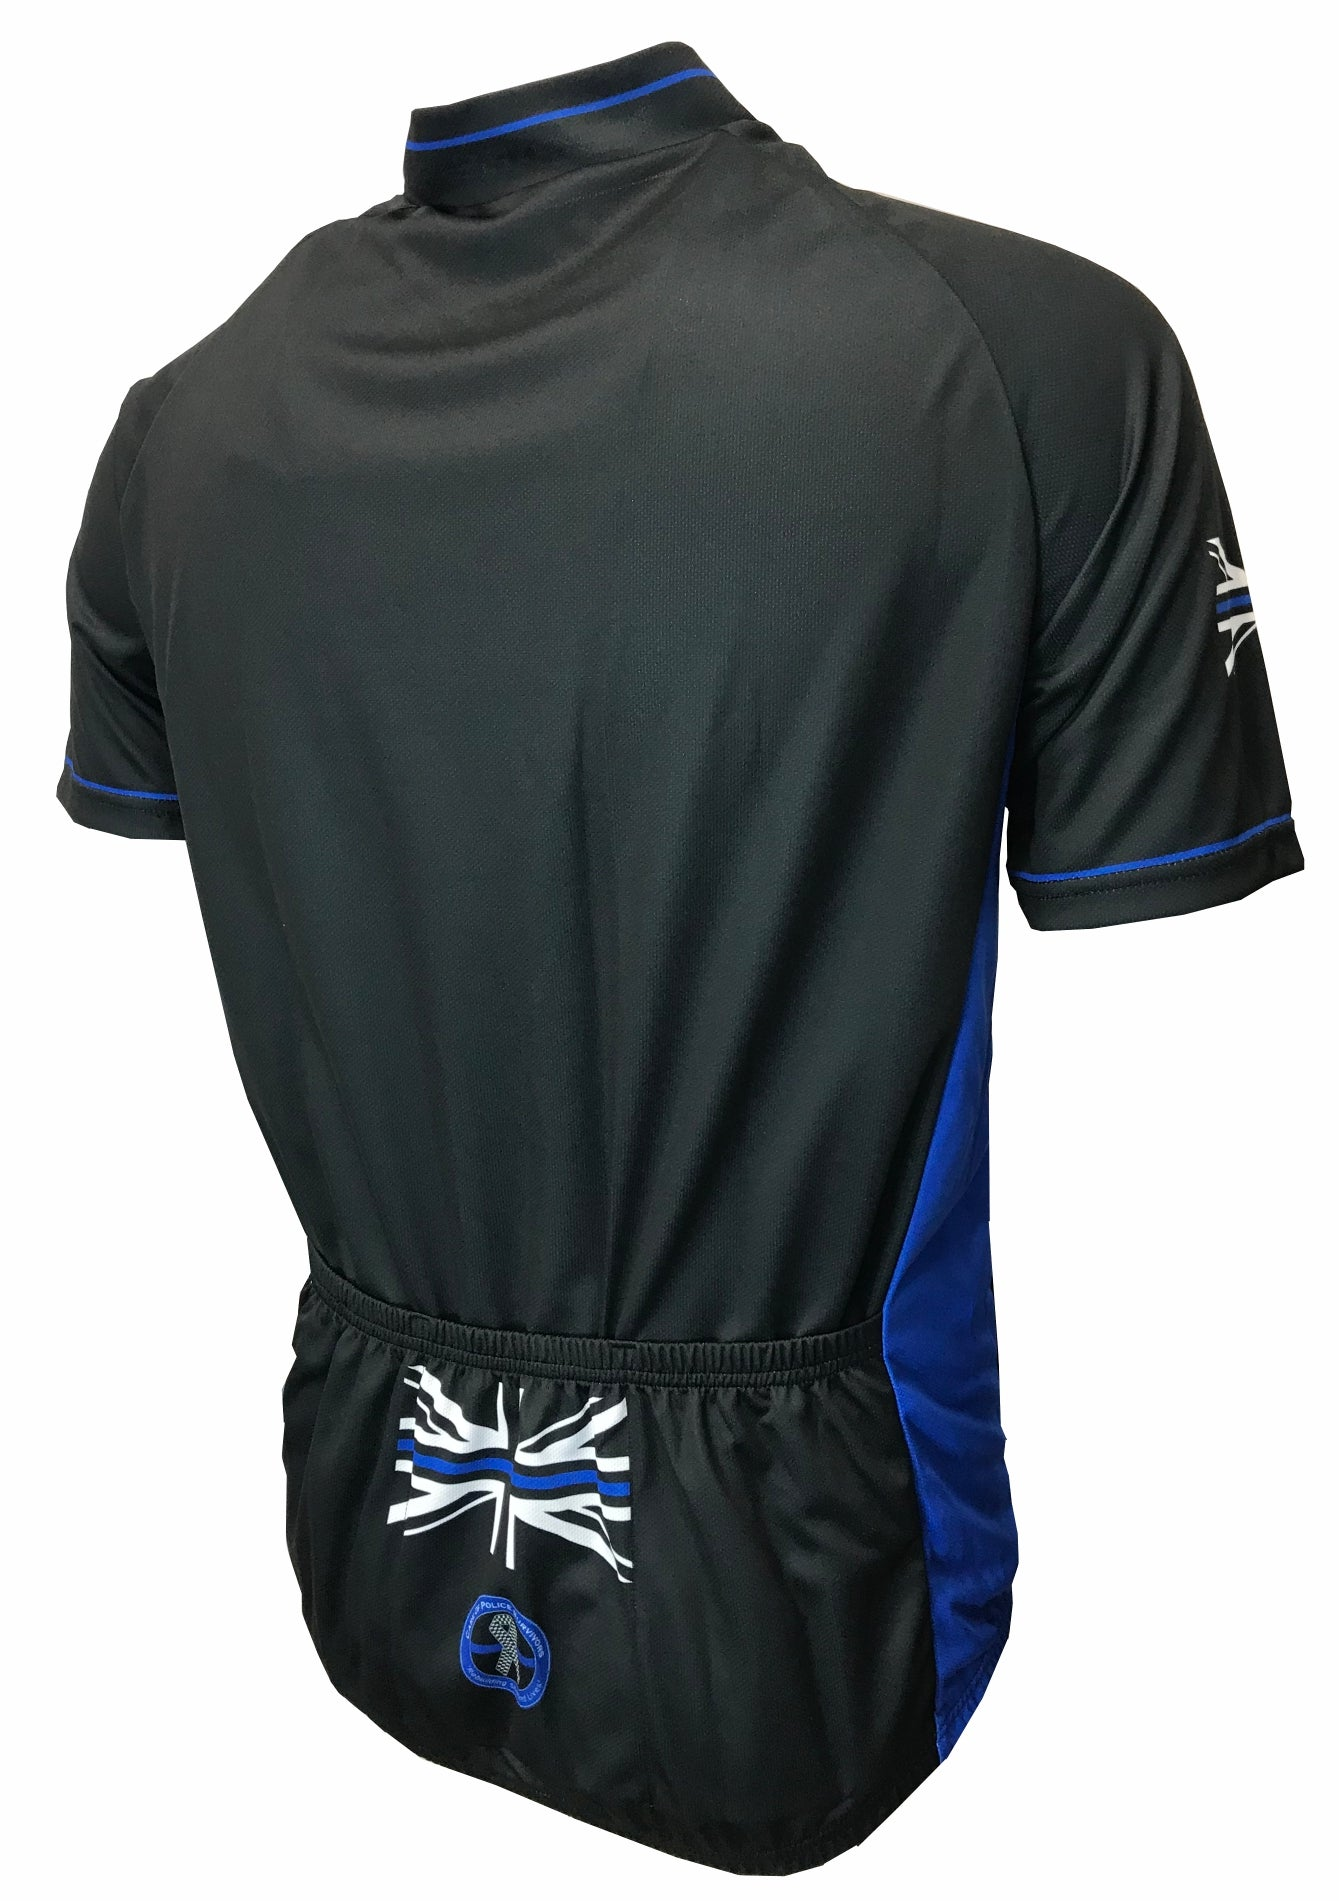 First Responder Thin Blue Line Road Jersey